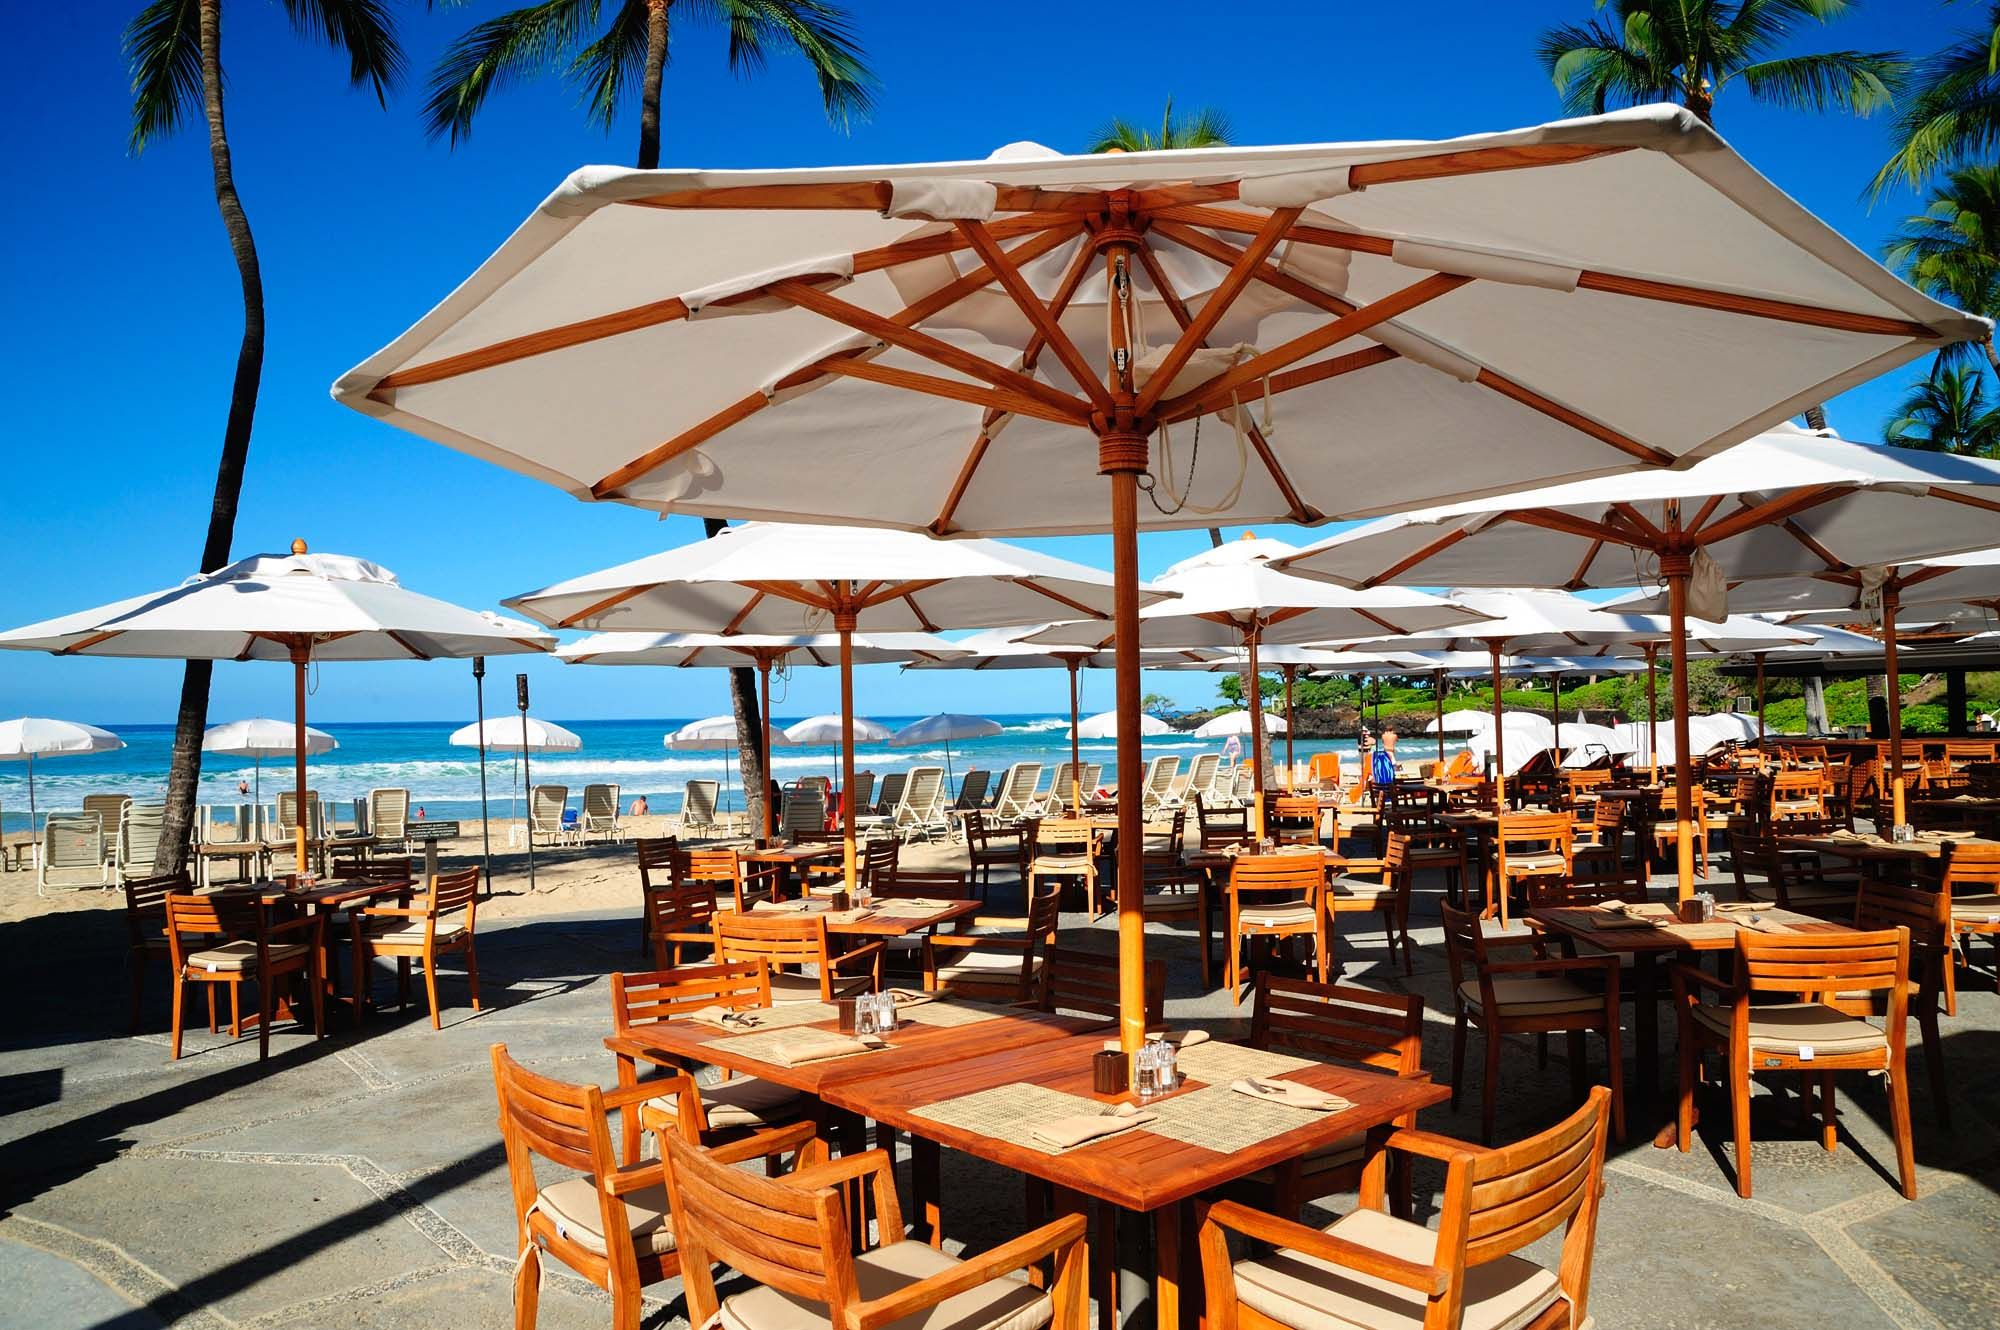 mauna kea beach hotel restaurants best restaurants near me rh glambypam net